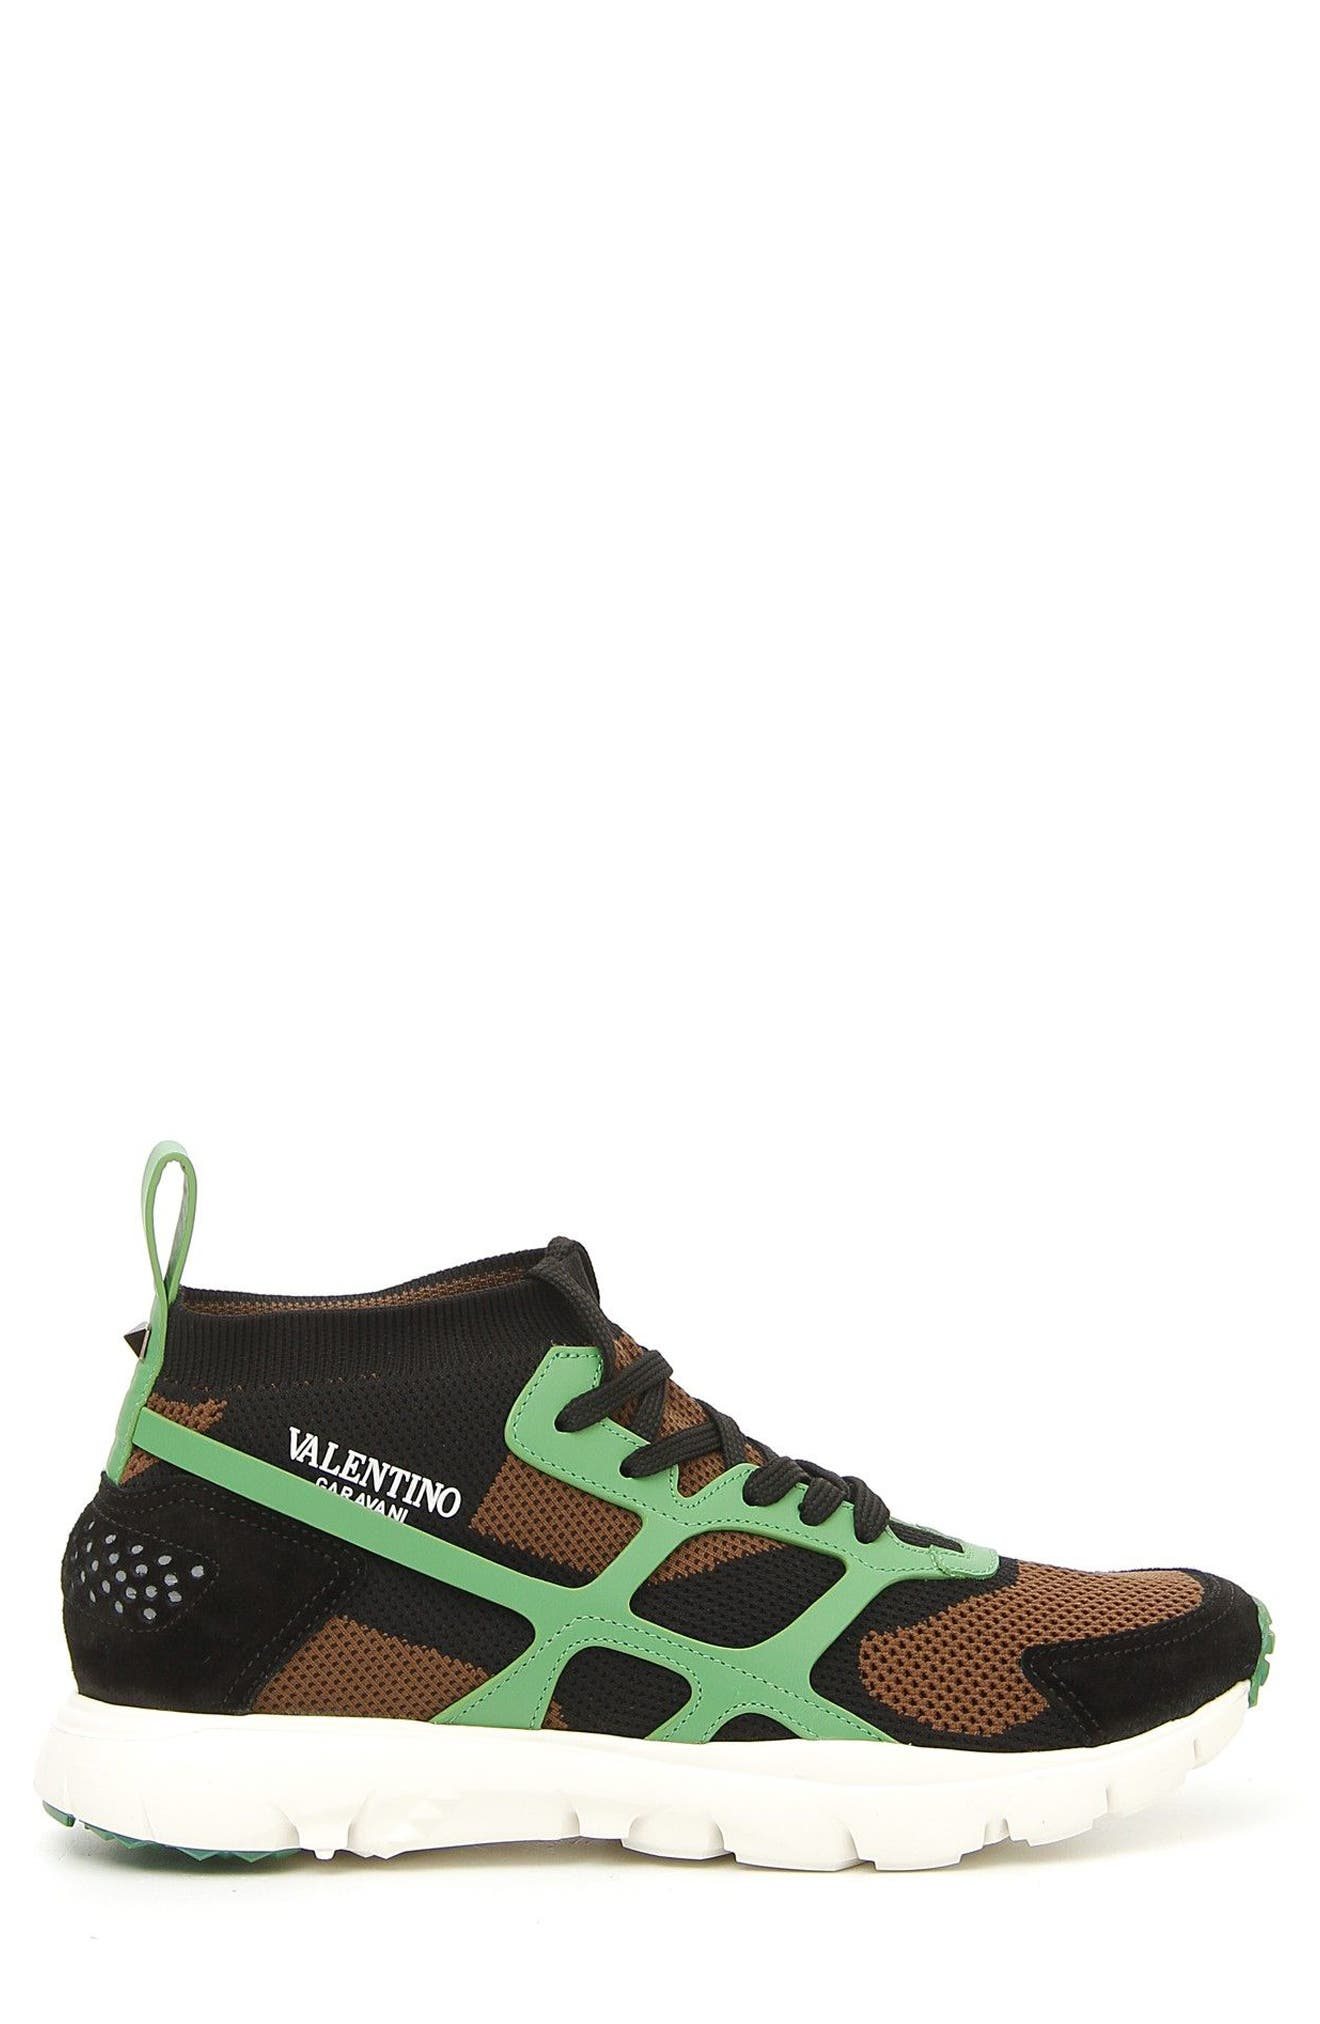 Sound High Sneaker,                             Alternate thumbnail 4, color,                             Army Green/ Nero/ Green